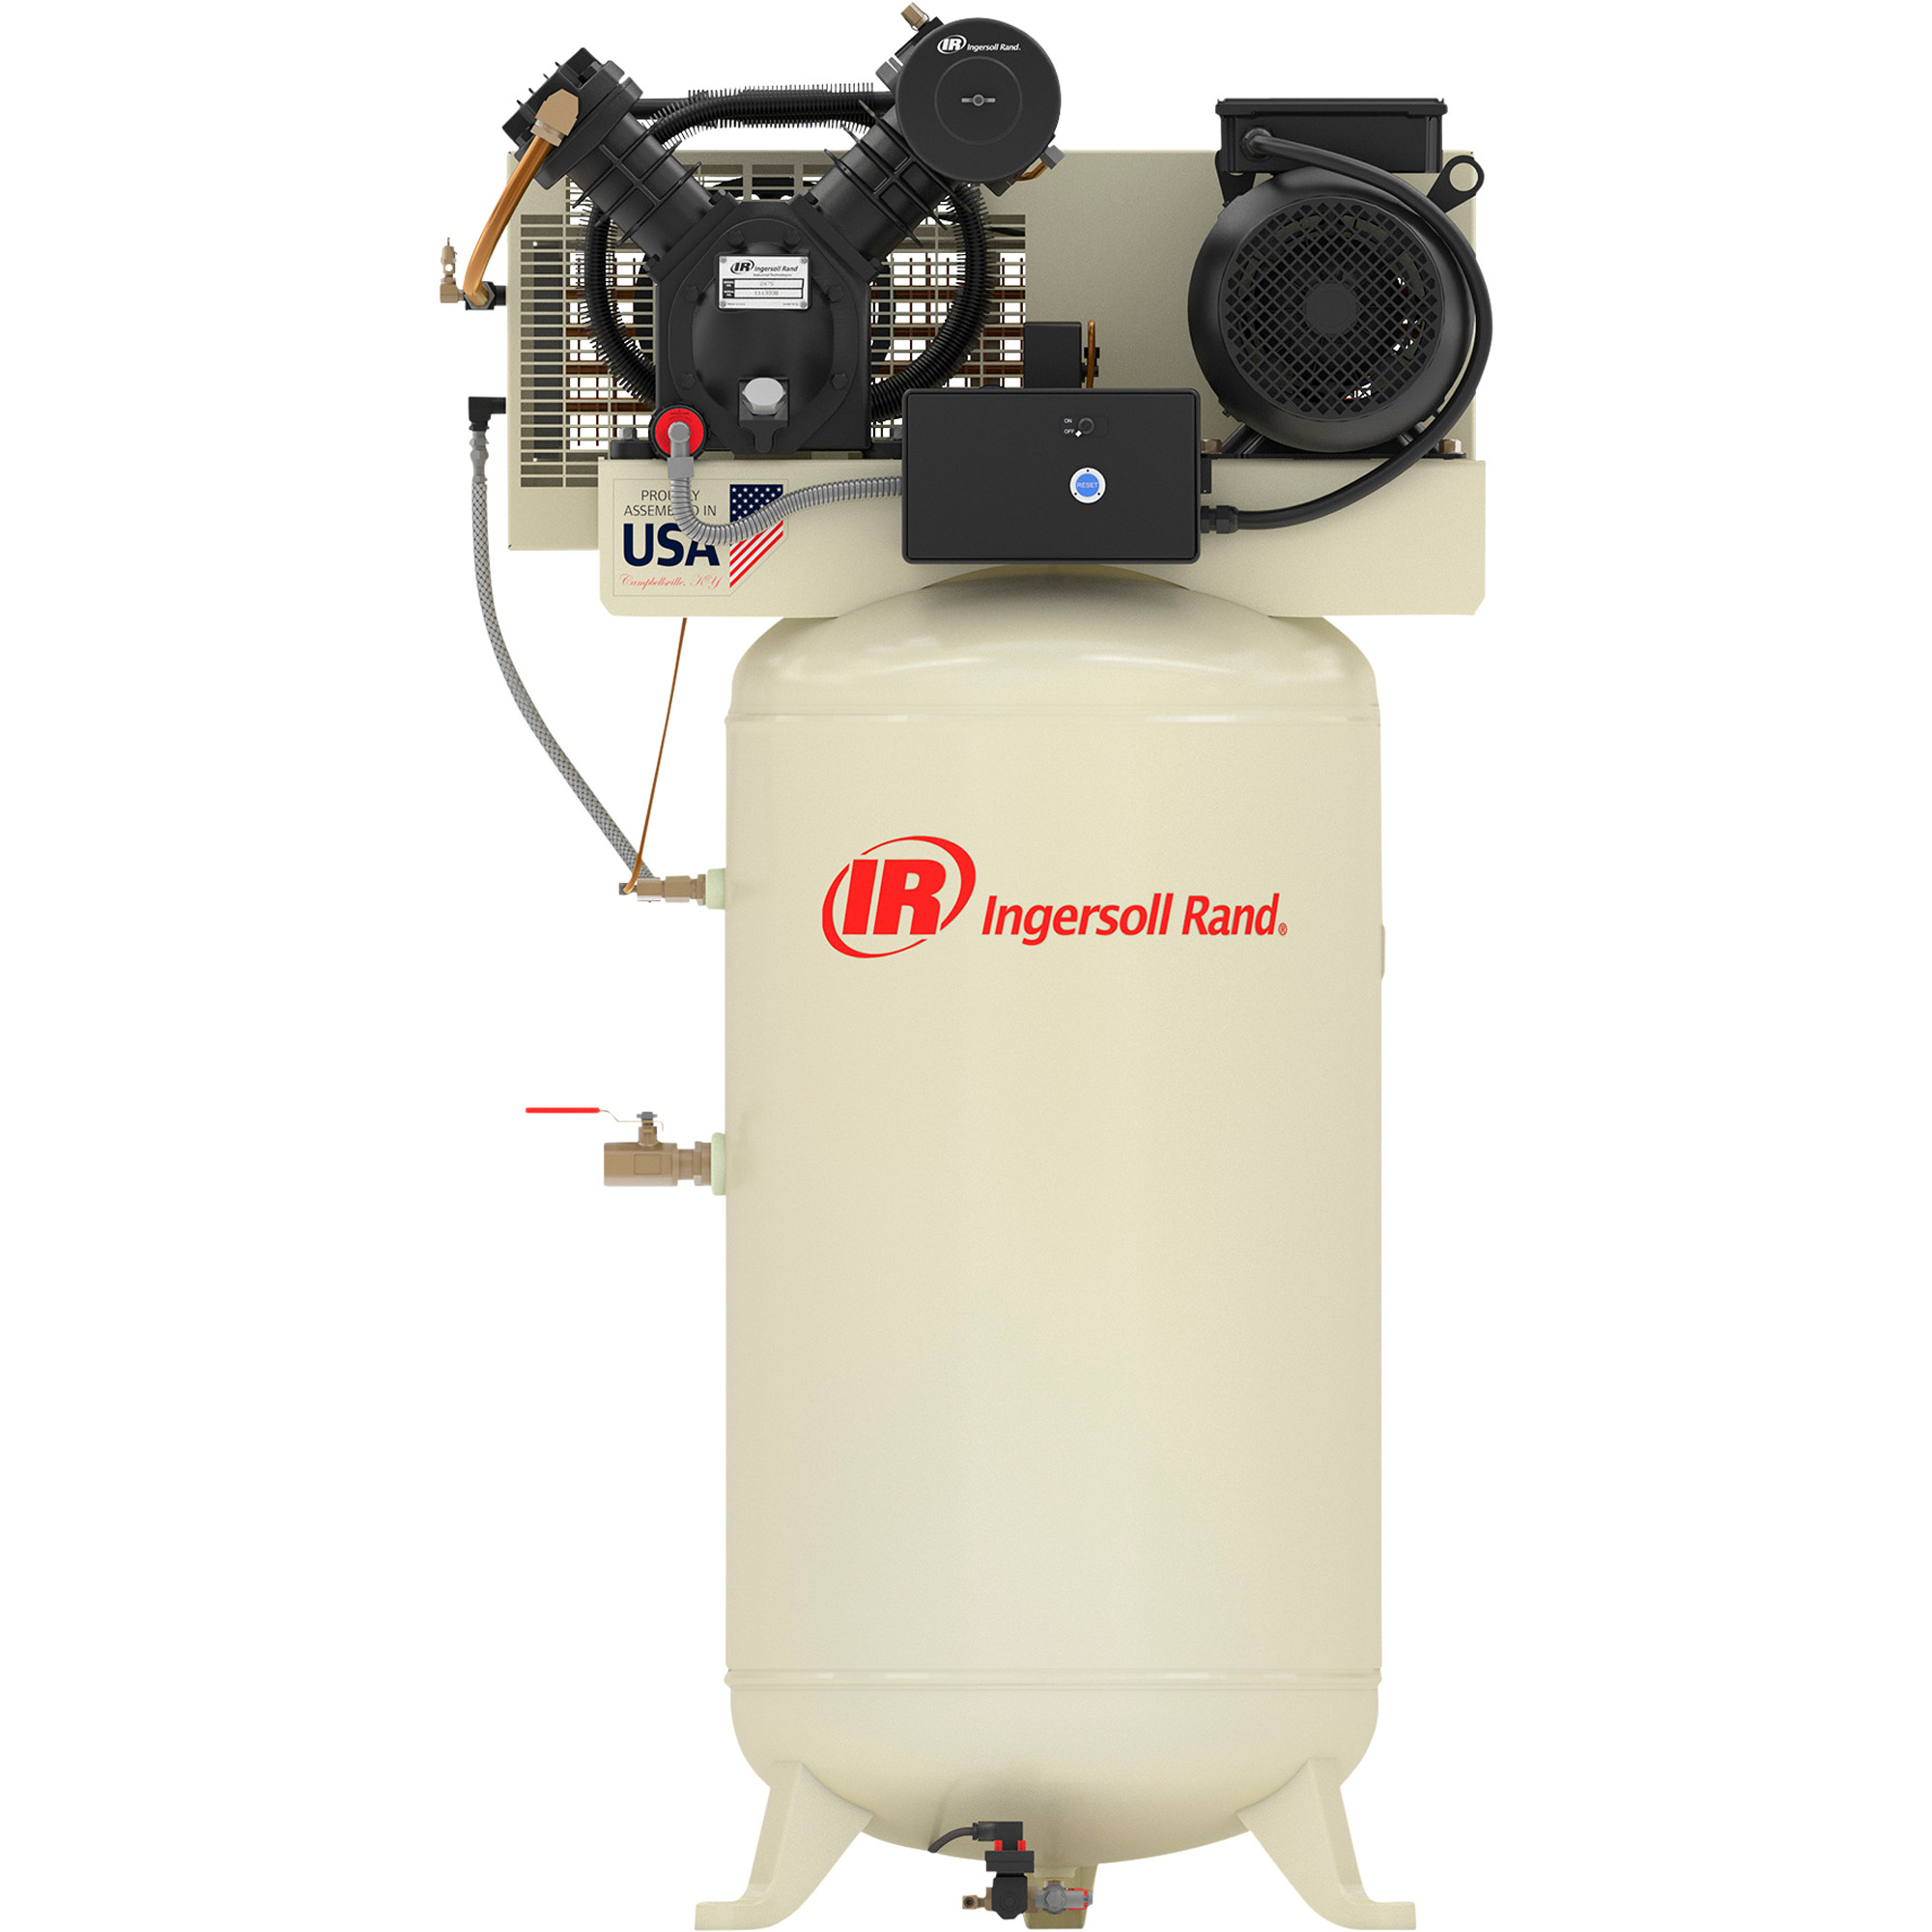 ingersoll rand type 30 reciprocating air compressor (fully packaged